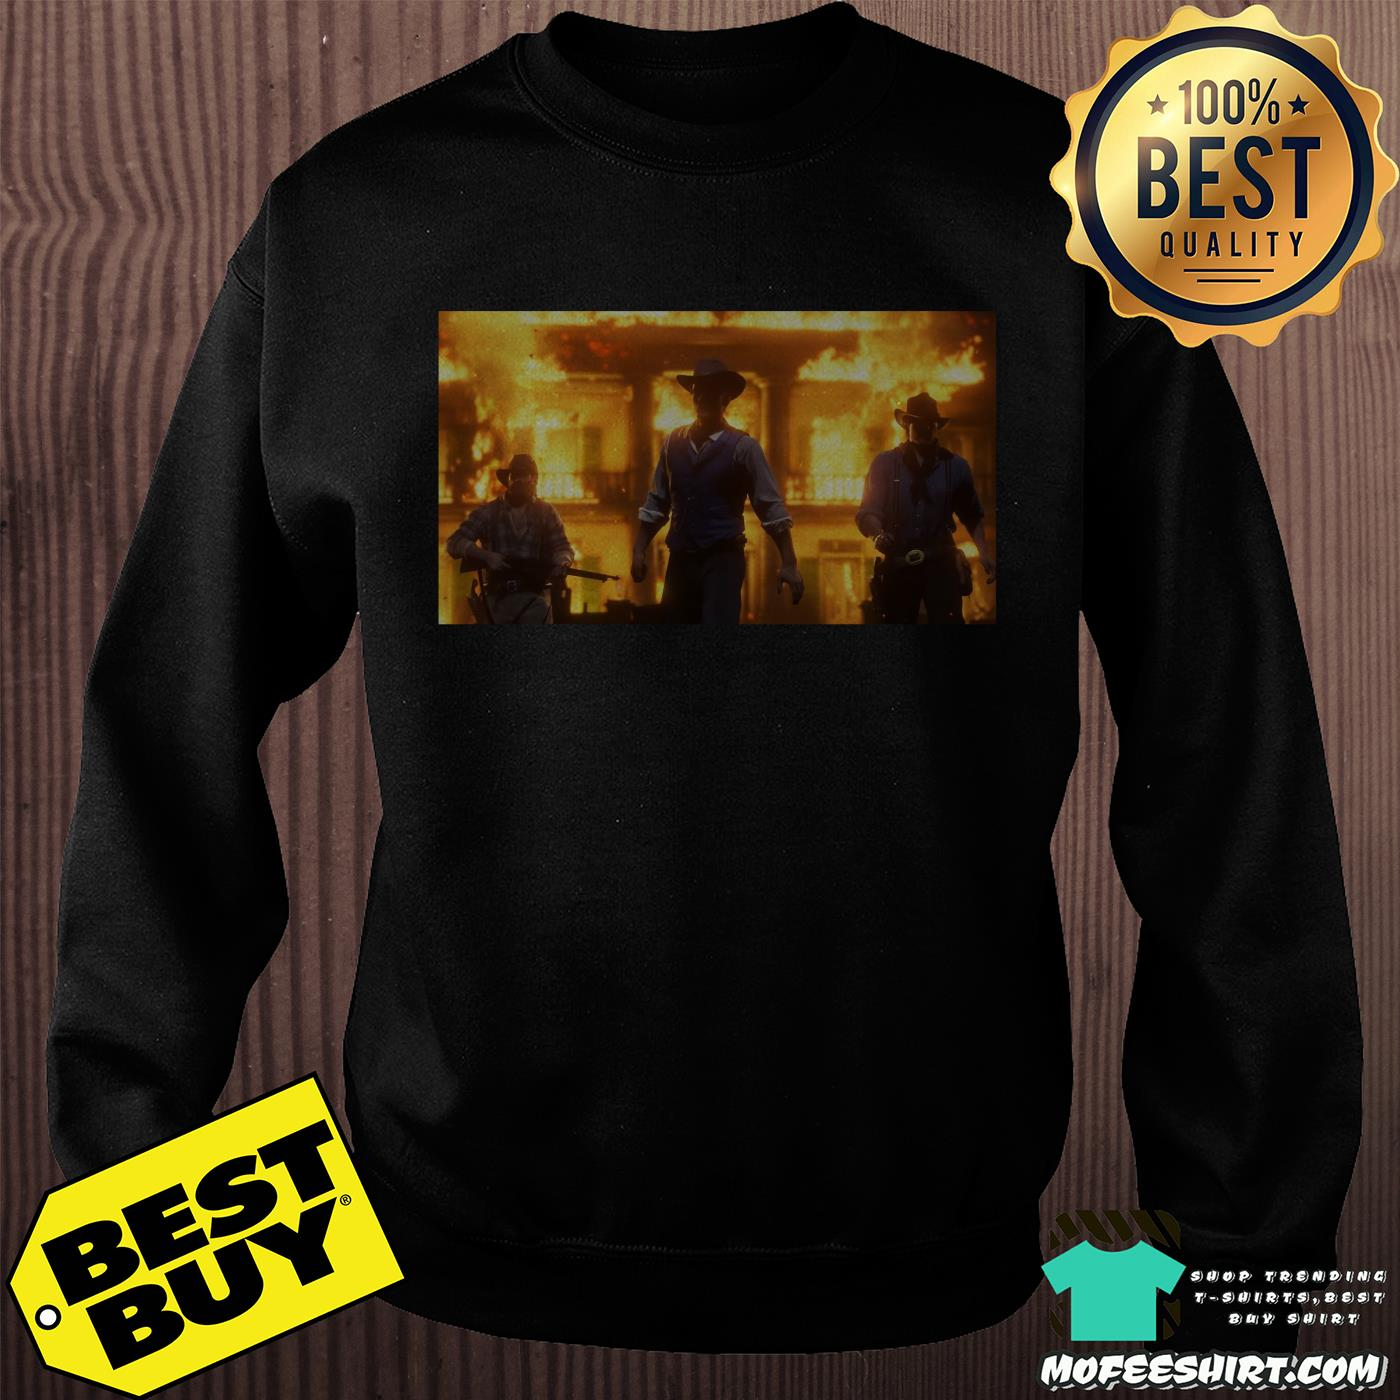 younter lil nas x old town road infant sweatshirt - Younter Lil NAS X Old Town Road Infant shirt